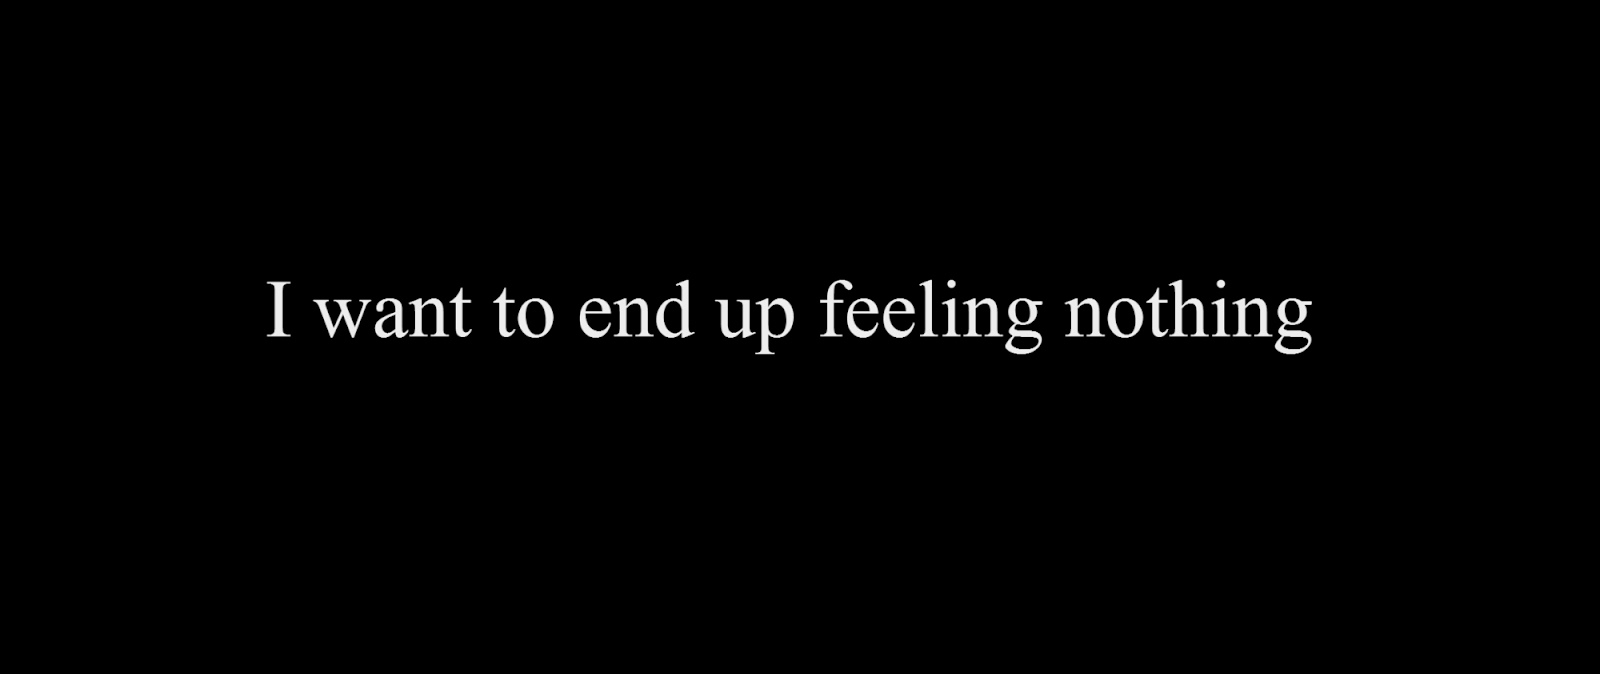 I want to end up feeling nothing